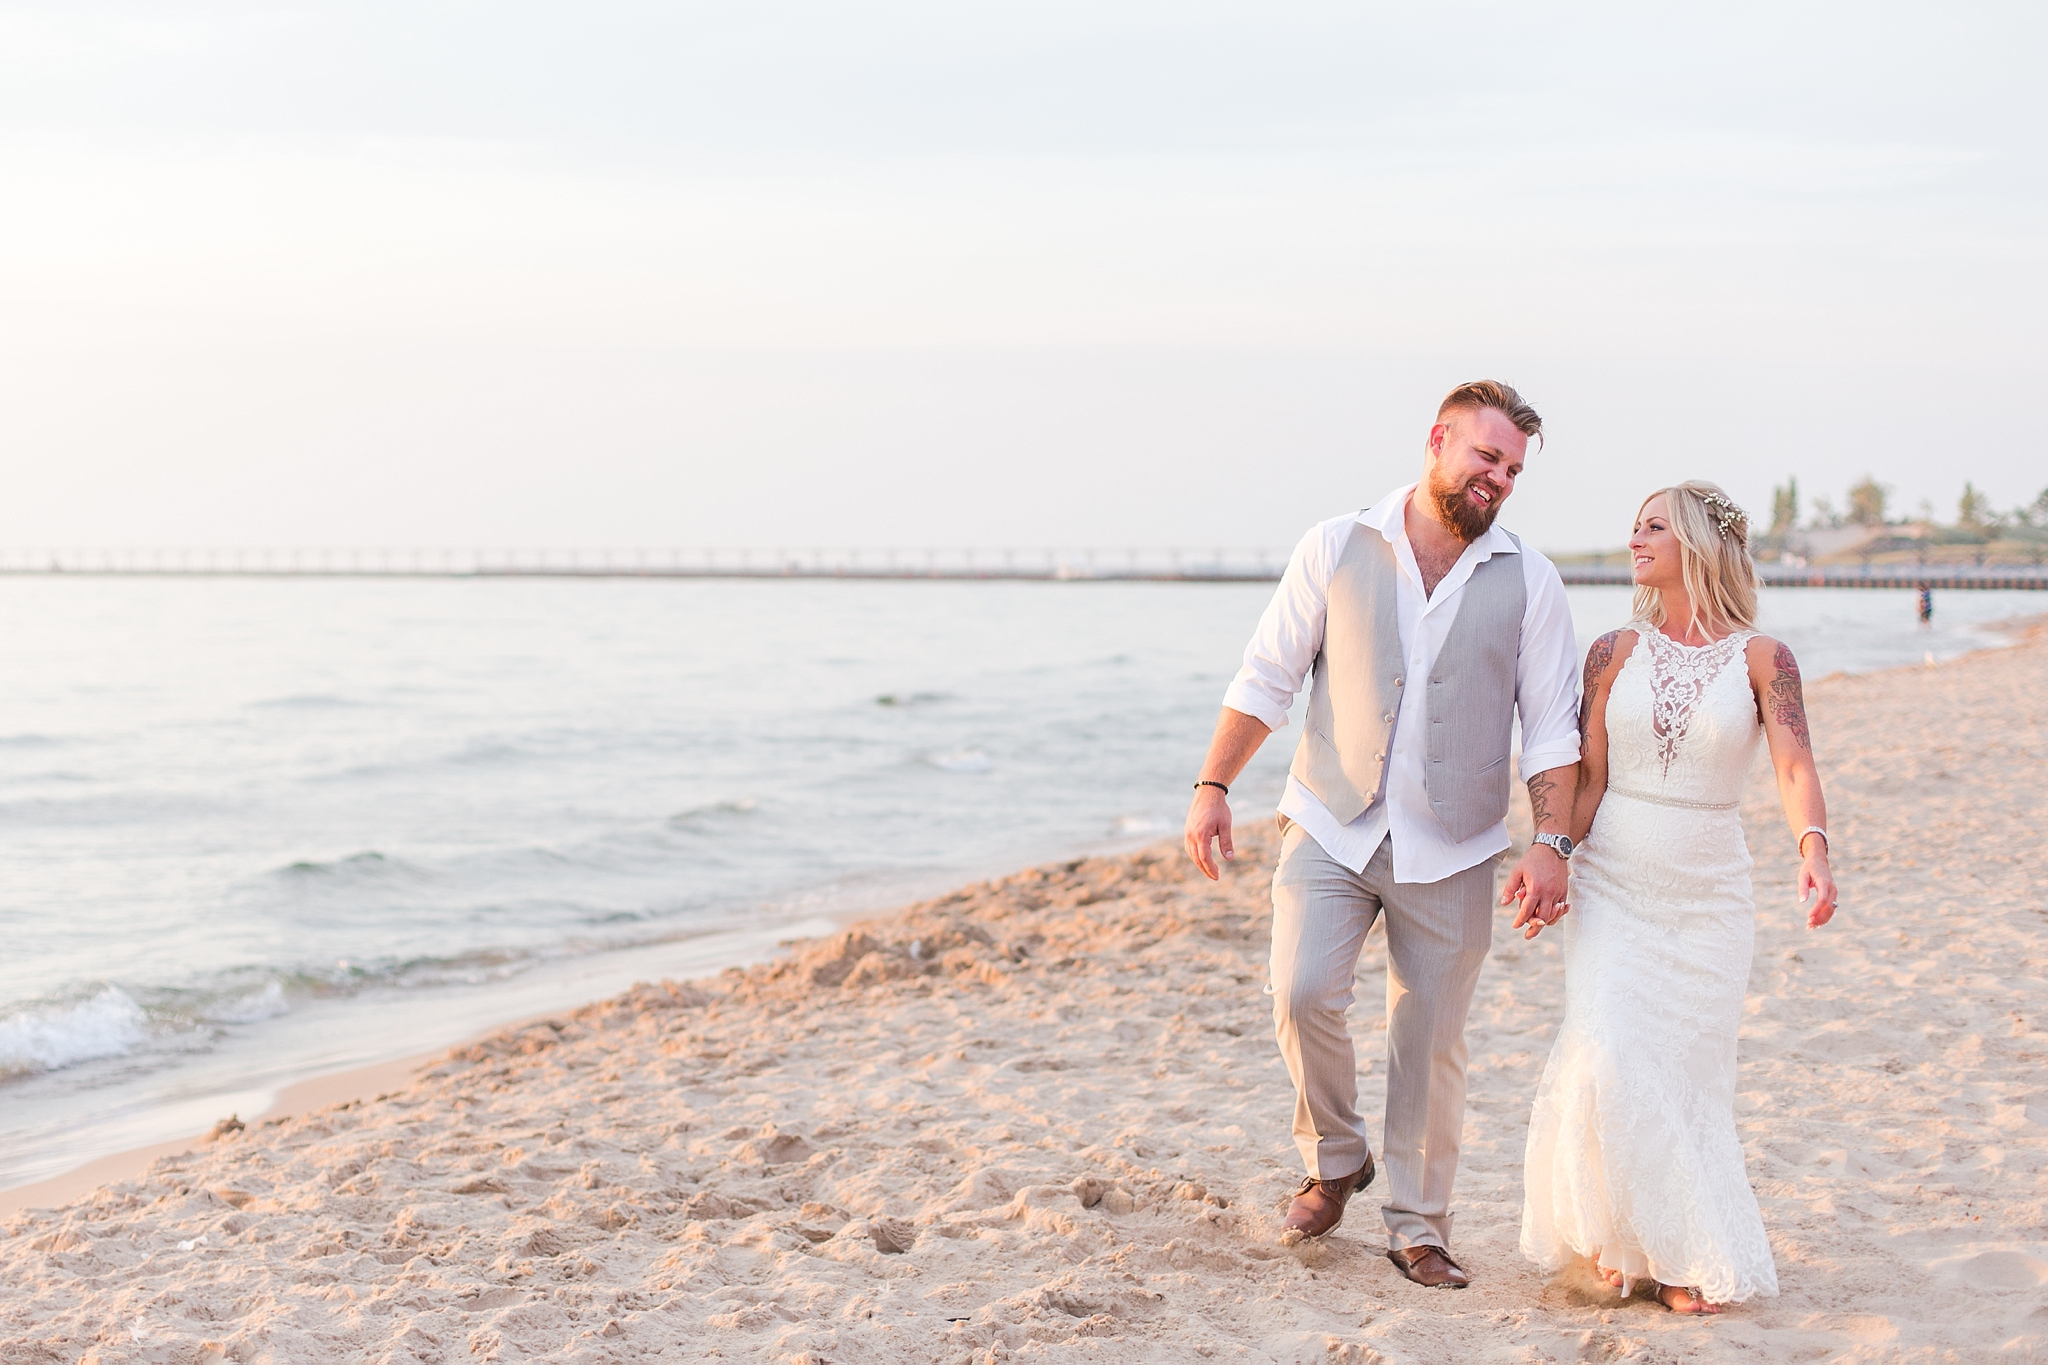 romantic-artful-candid-wedding-photos-in-detroit-lansing-ann-arbor-northern-michigan-and-chicago-by-courtney-carolyn-photography_0091.jpg